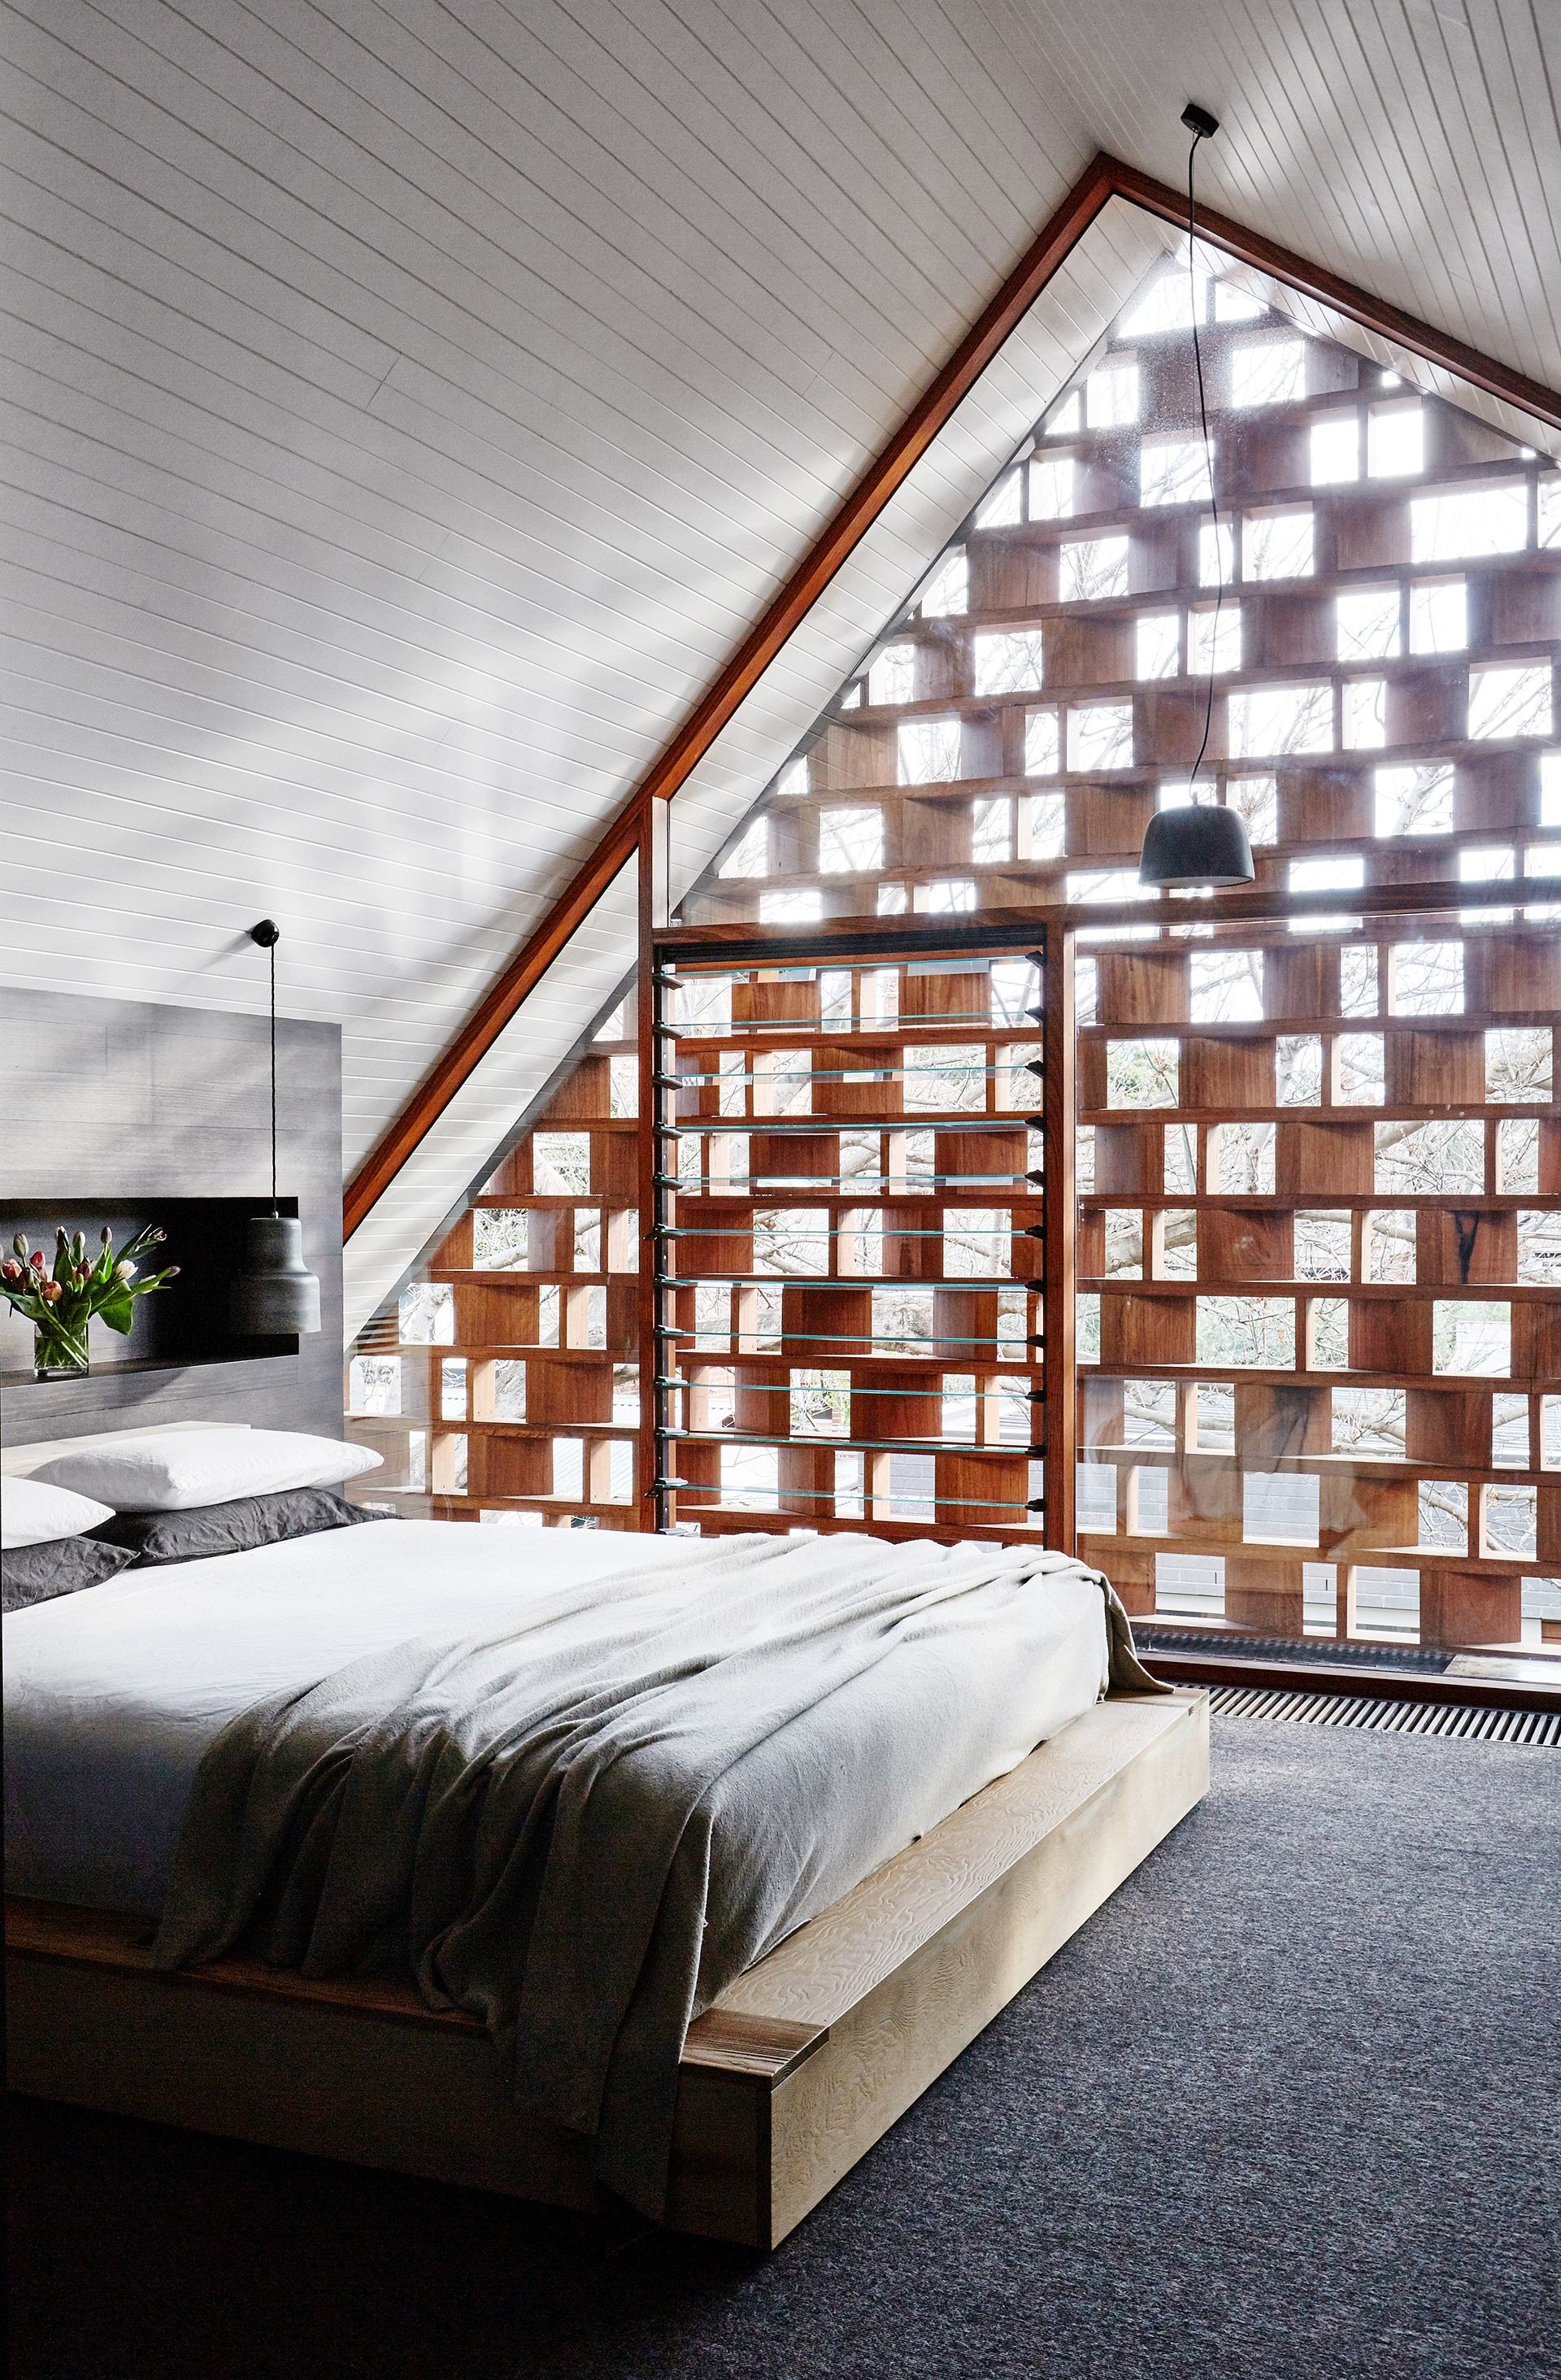 A custom timber screen was designed to provide this master bedroom with privacy, but has also become one of the most distinctive features of this [renovated Californian bungalow in Melbourne](http://www.homestolove.com.au/architects-serve-up-cafe-aesthetic-for-suburban-home-3089). Photo: Sean Fennessy / *Belle*